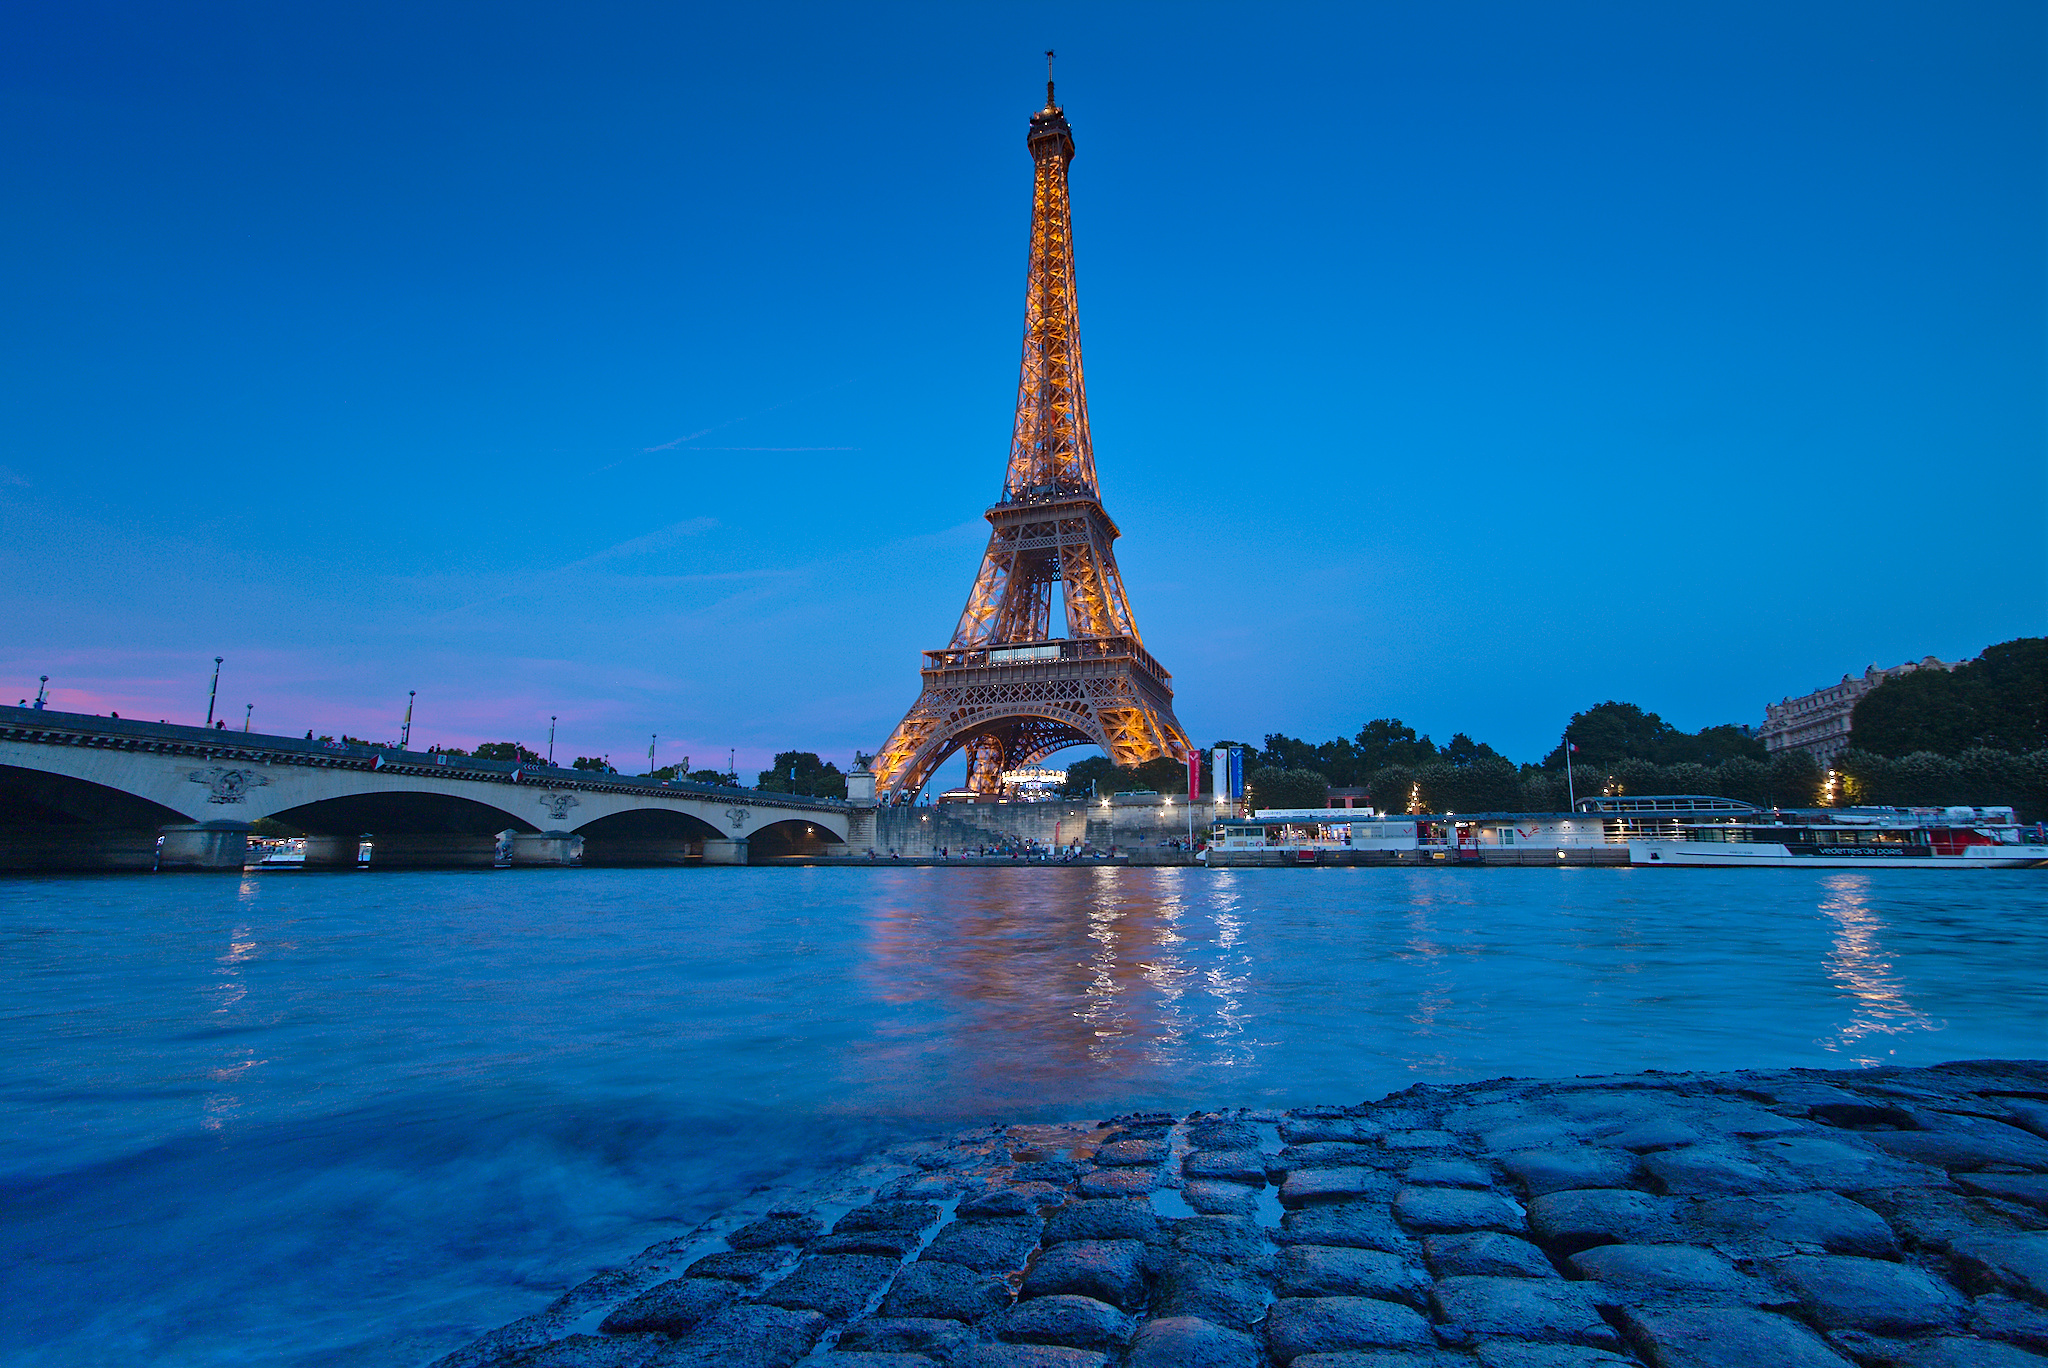 Eiffel tower seen from Port Debilly, Paris, France